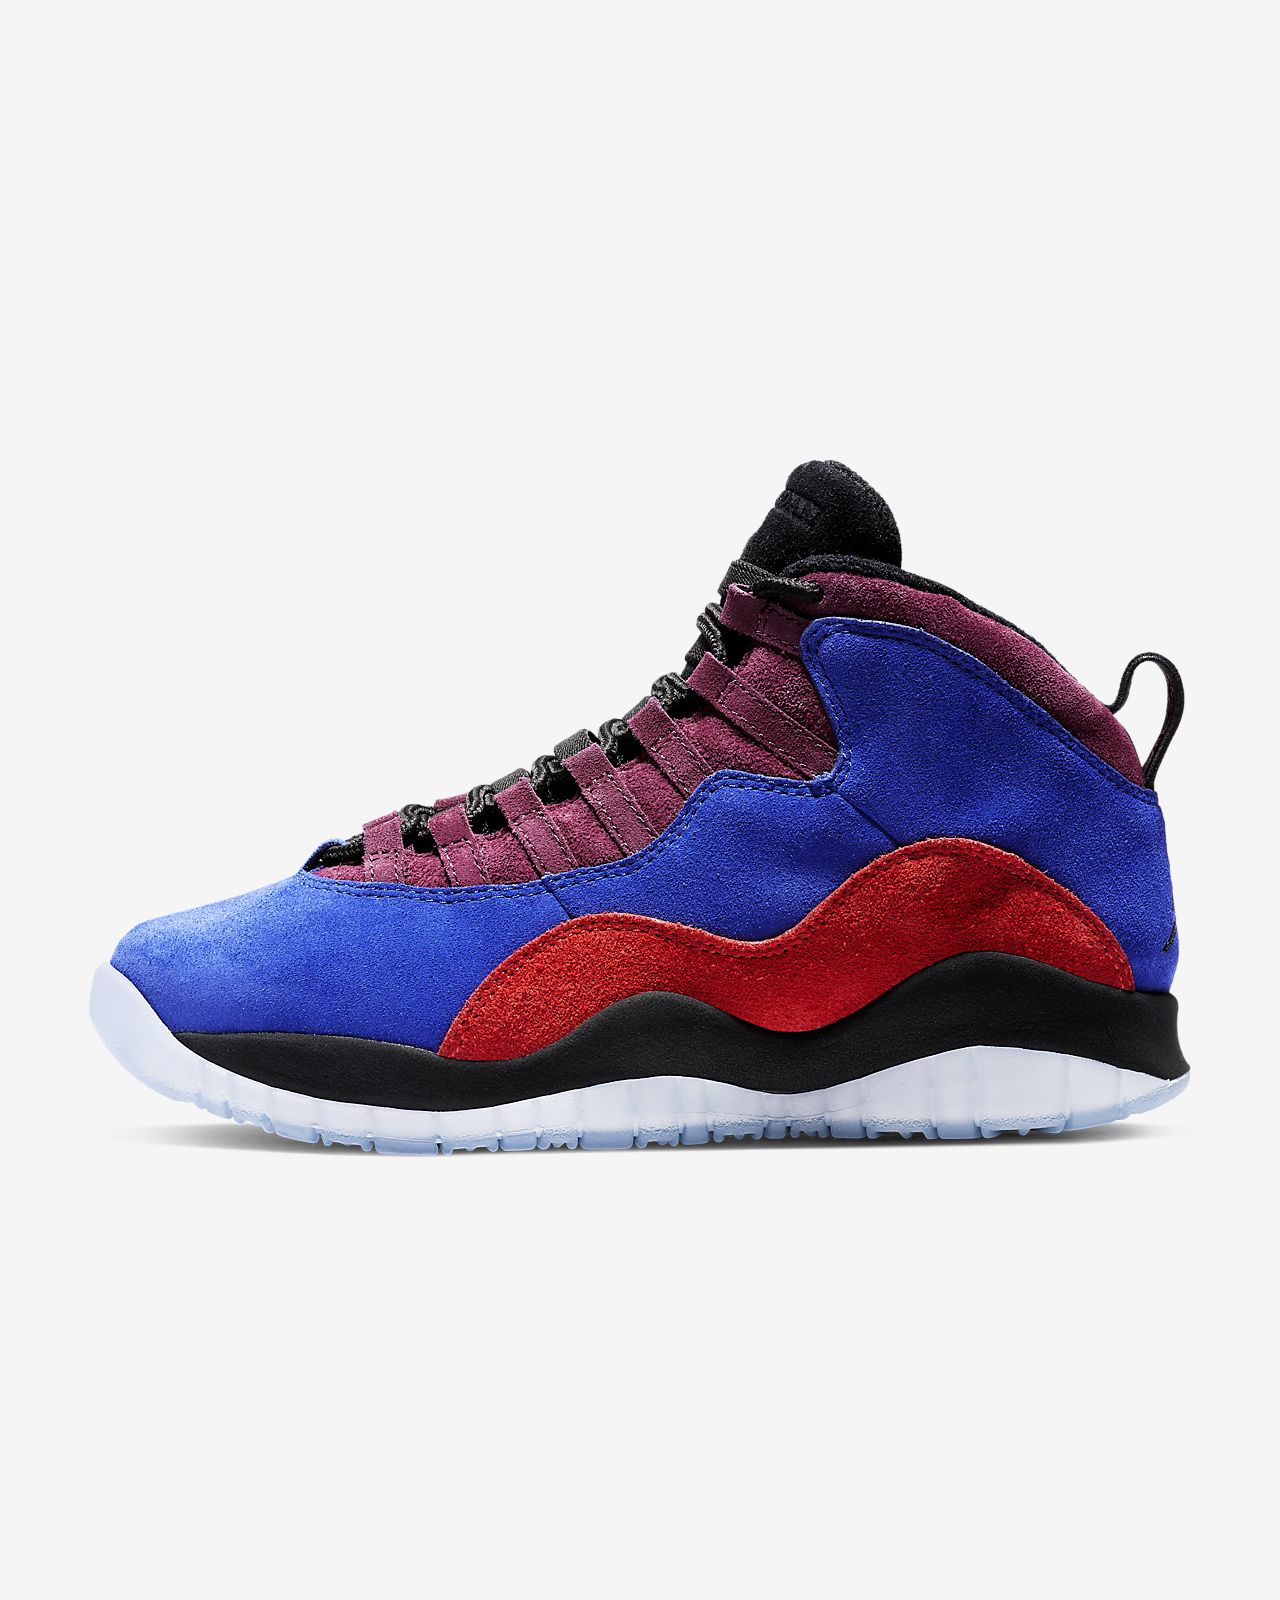 info for 8d316 b5c0b Air Jordan 10 Retro Women's Shoe